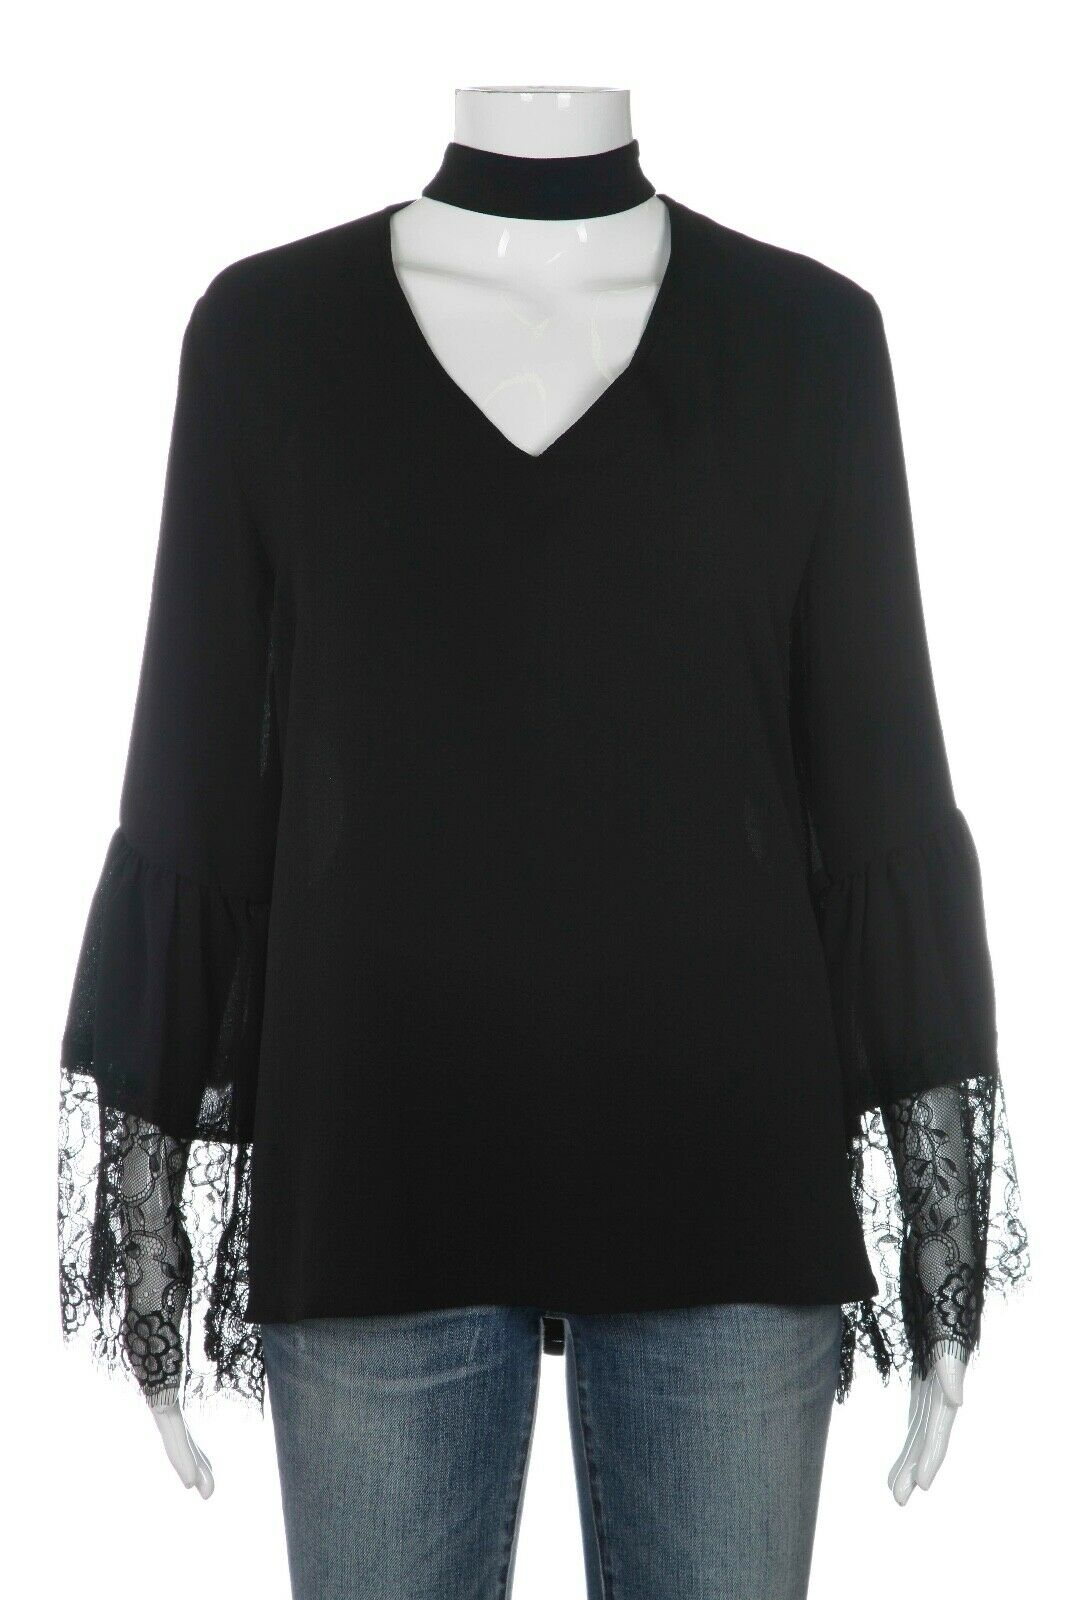 HARVE BERNARD Lace Bell Sleeve Top Size XL (New)